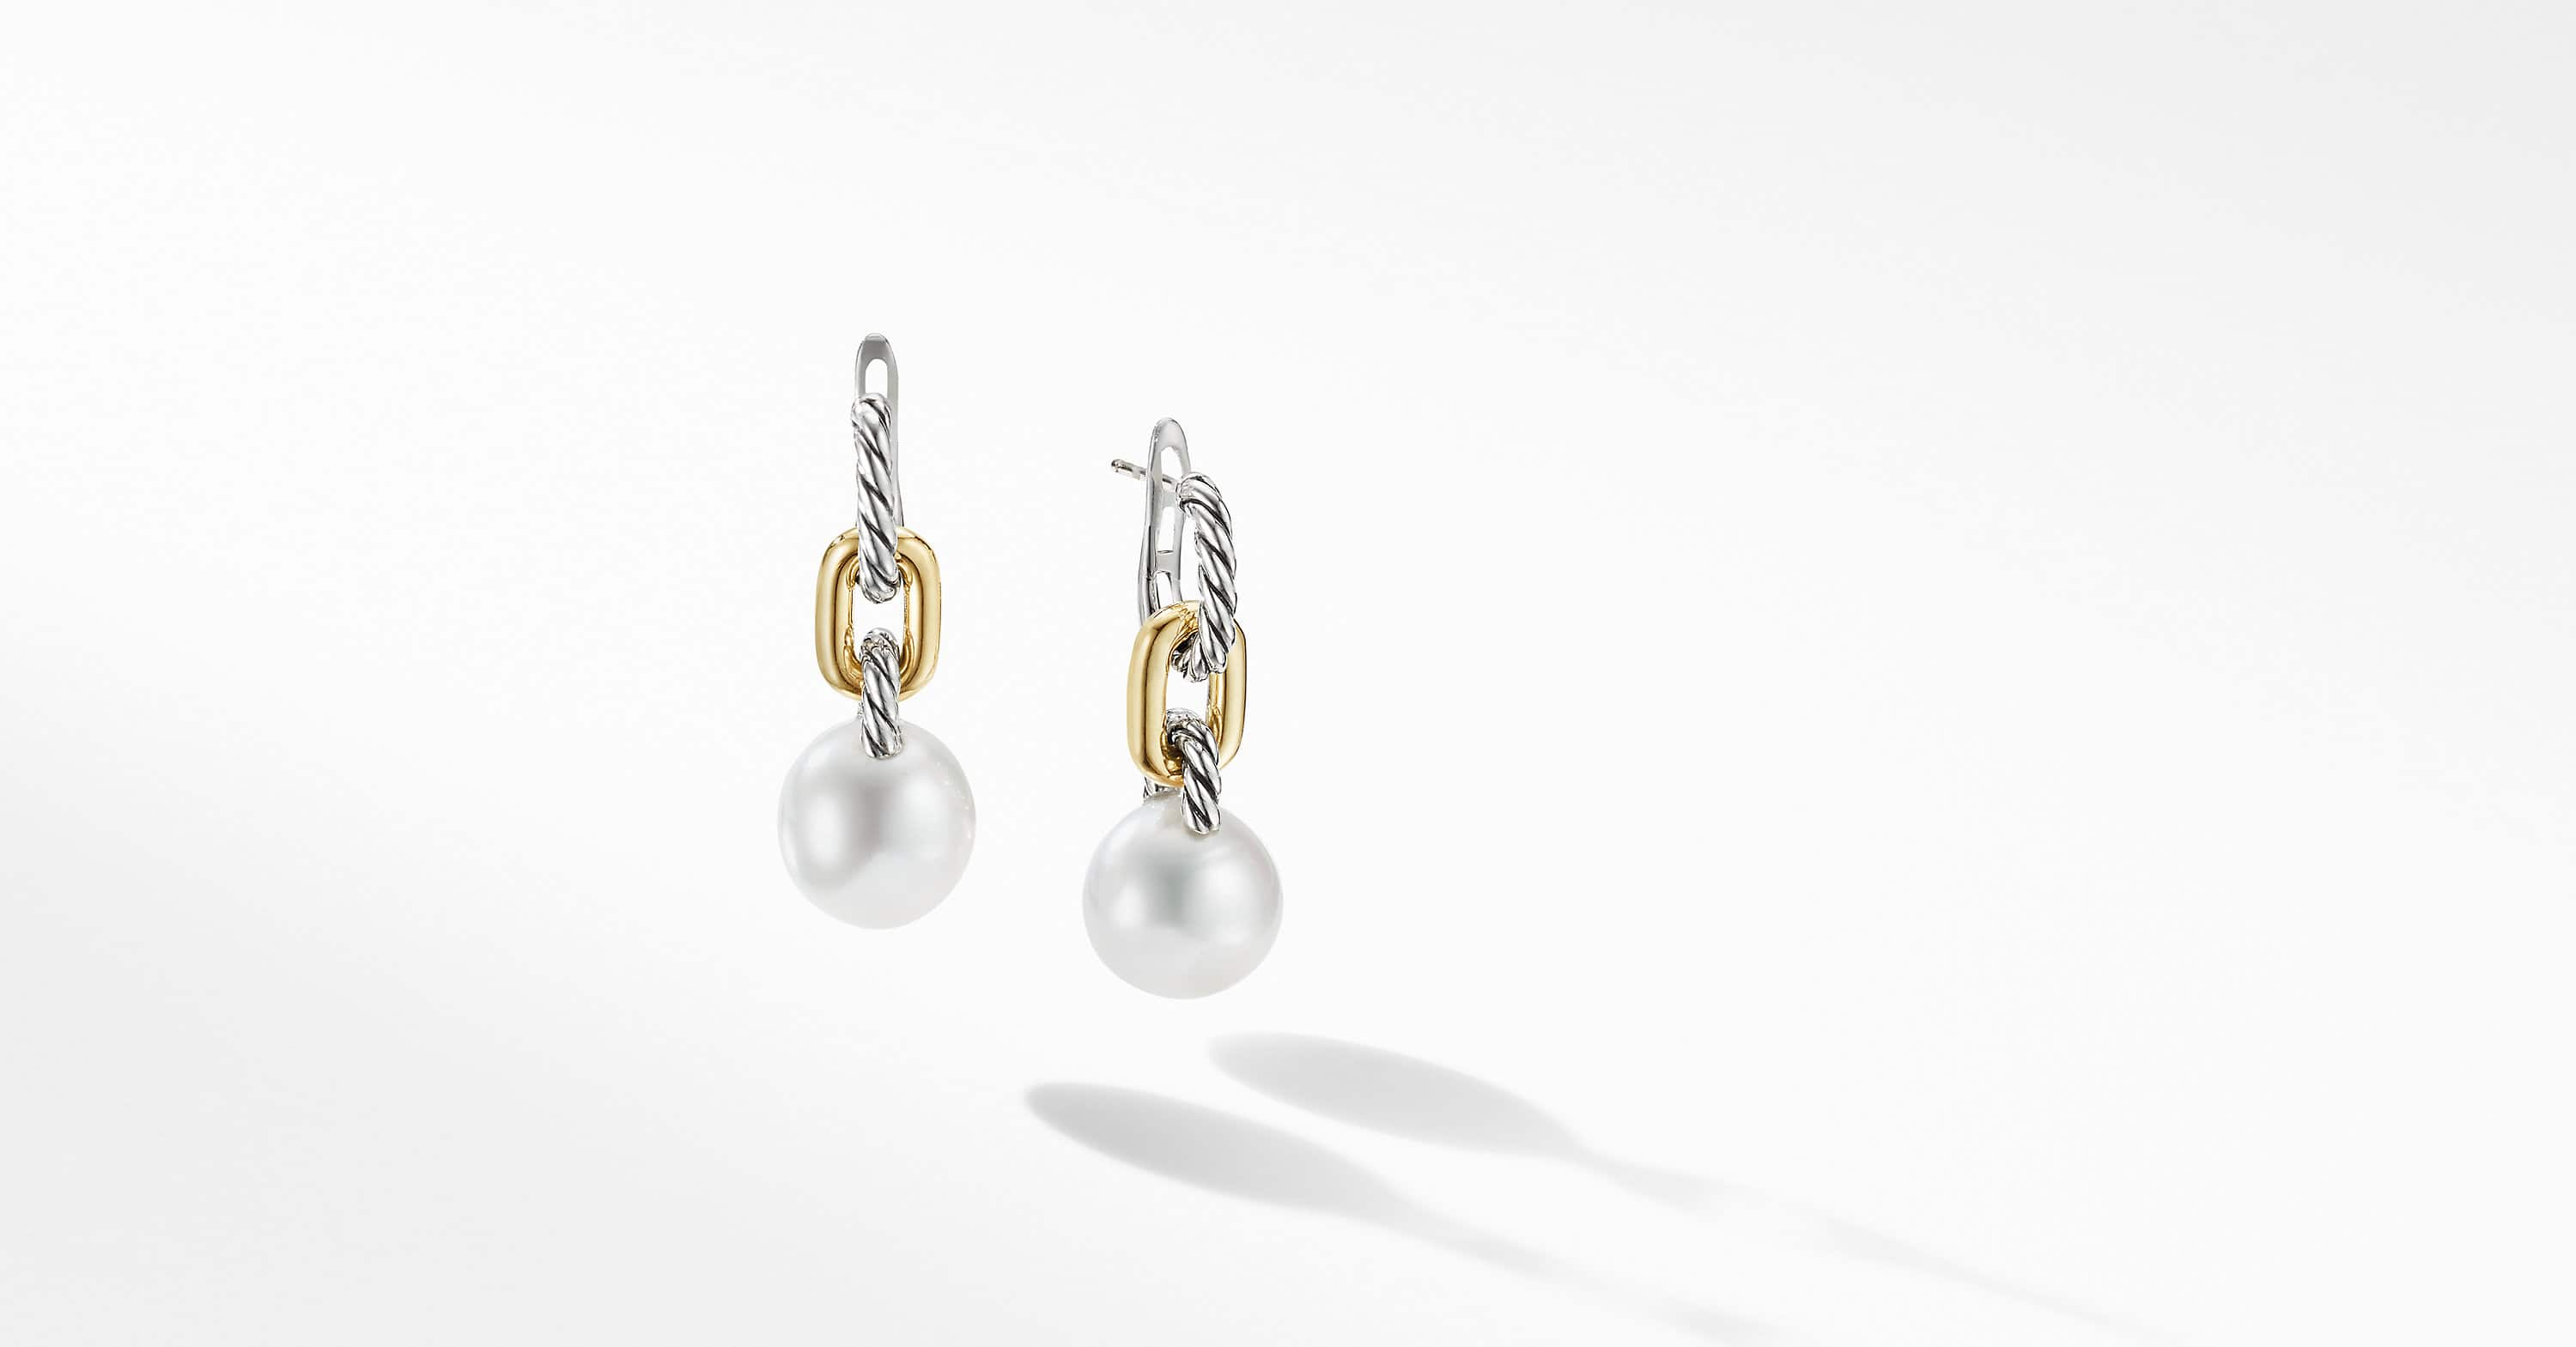 DY Madison Pearl Chain Drop Earrings with 18K Yellow Gold, 32.3mm